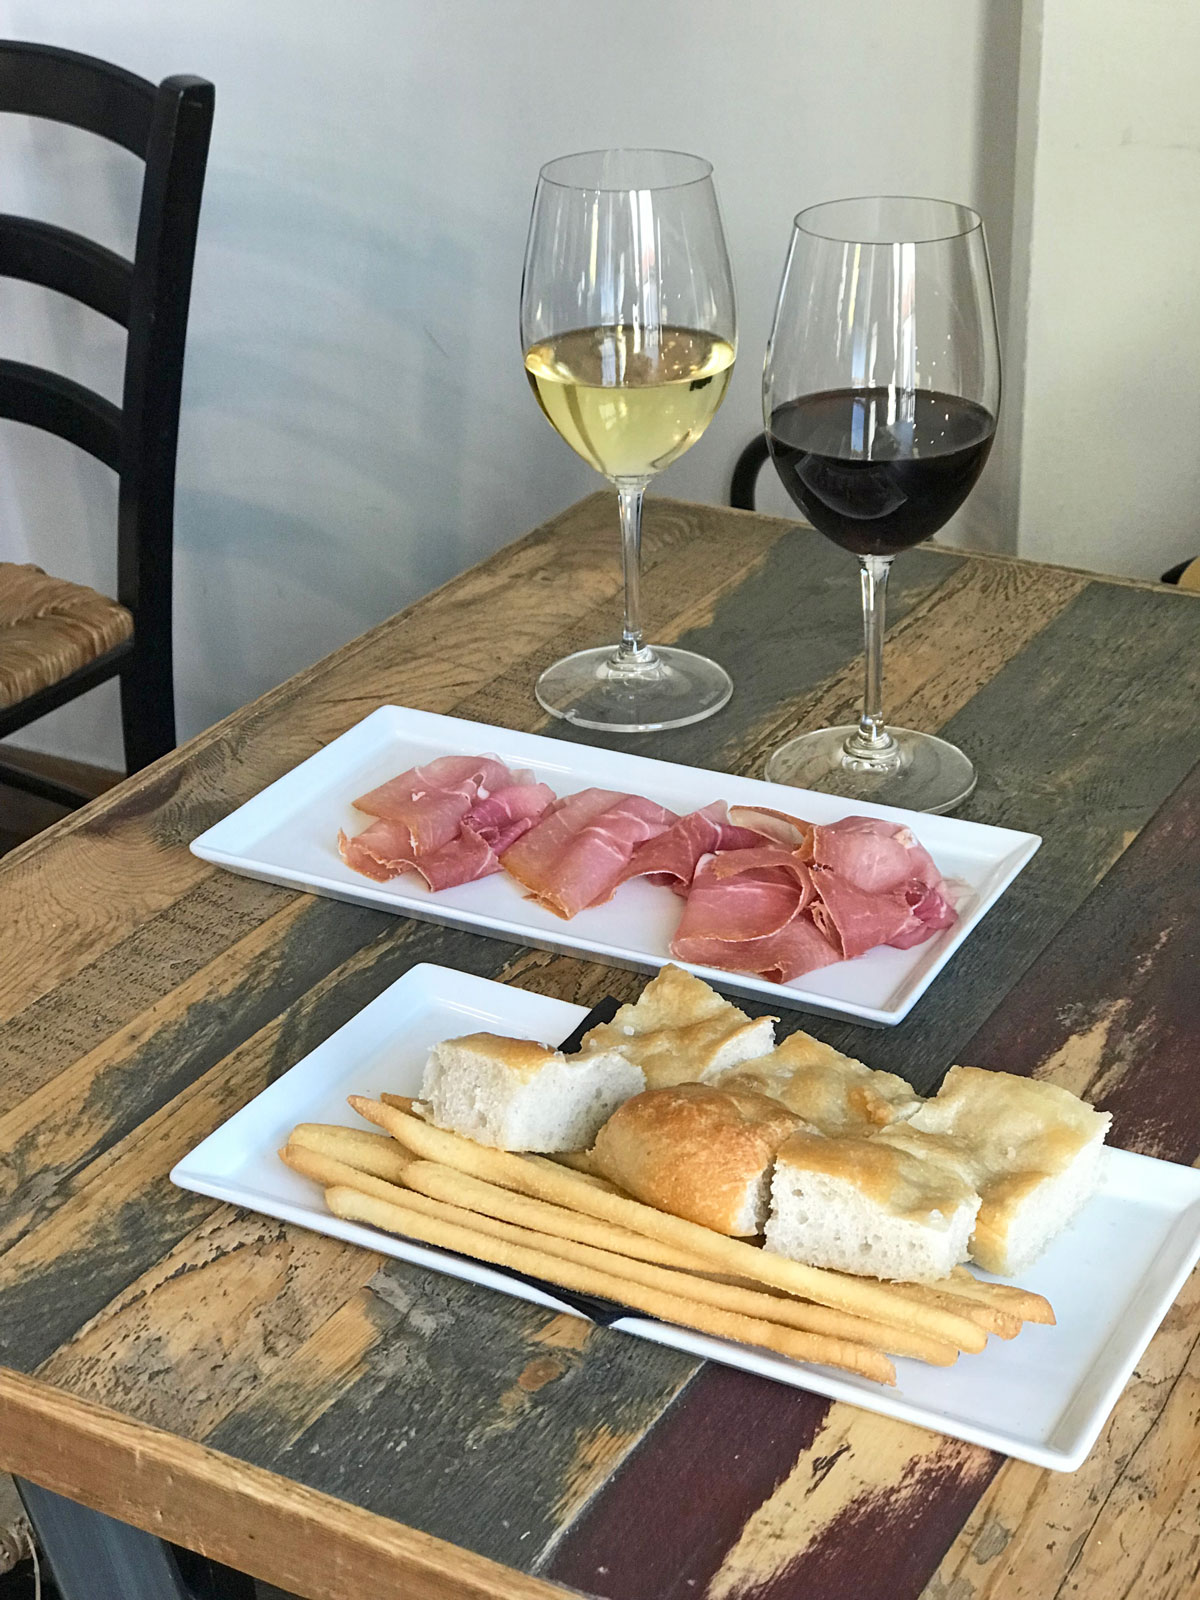 Cured ham from Cuneo to go with a glass of wine